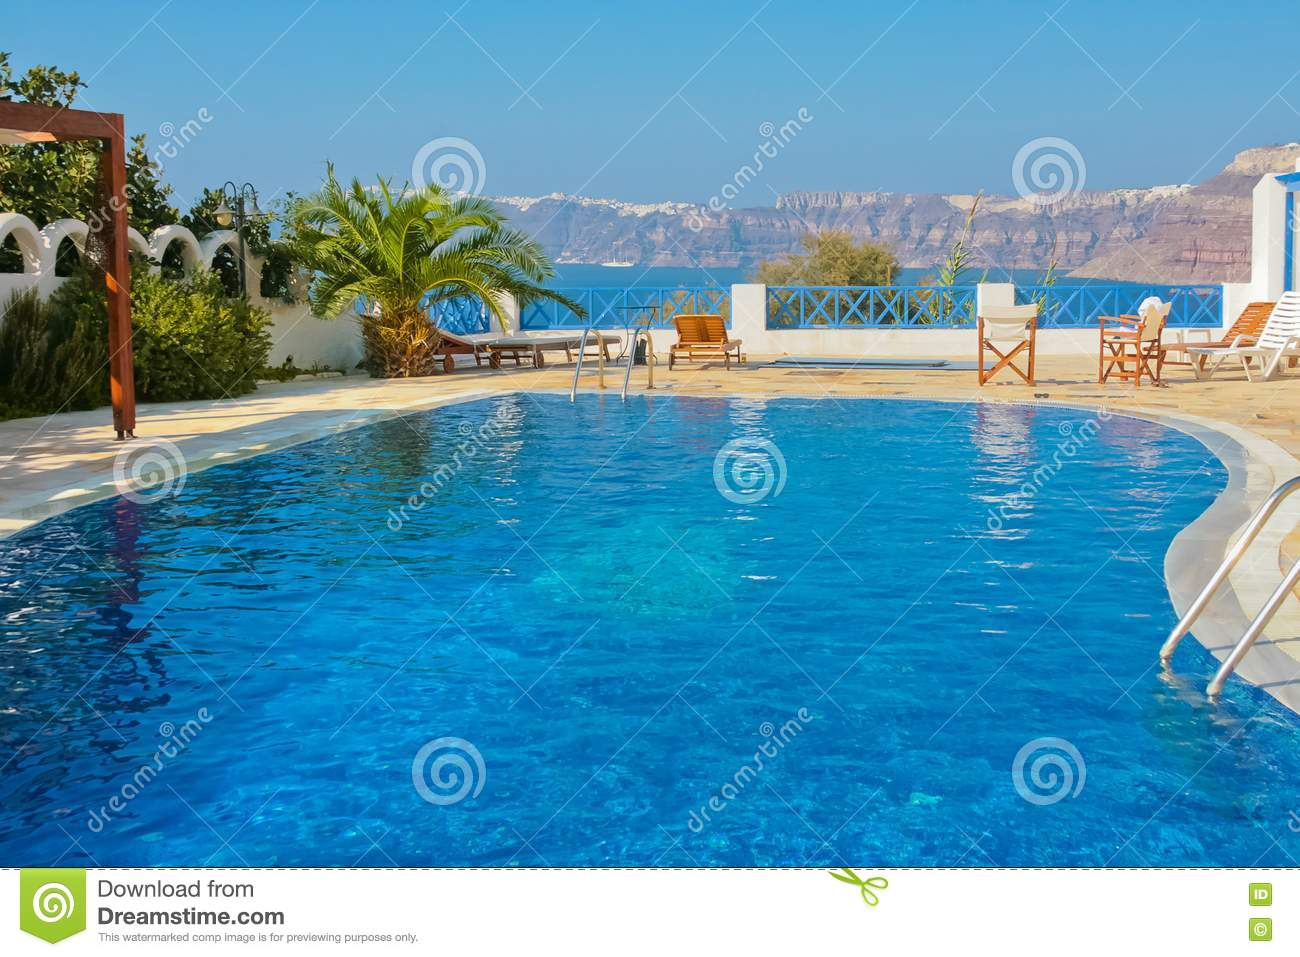 Blue swimming pool in fira on island of santorini stock photography image 19432062 for Private swimming pools long island